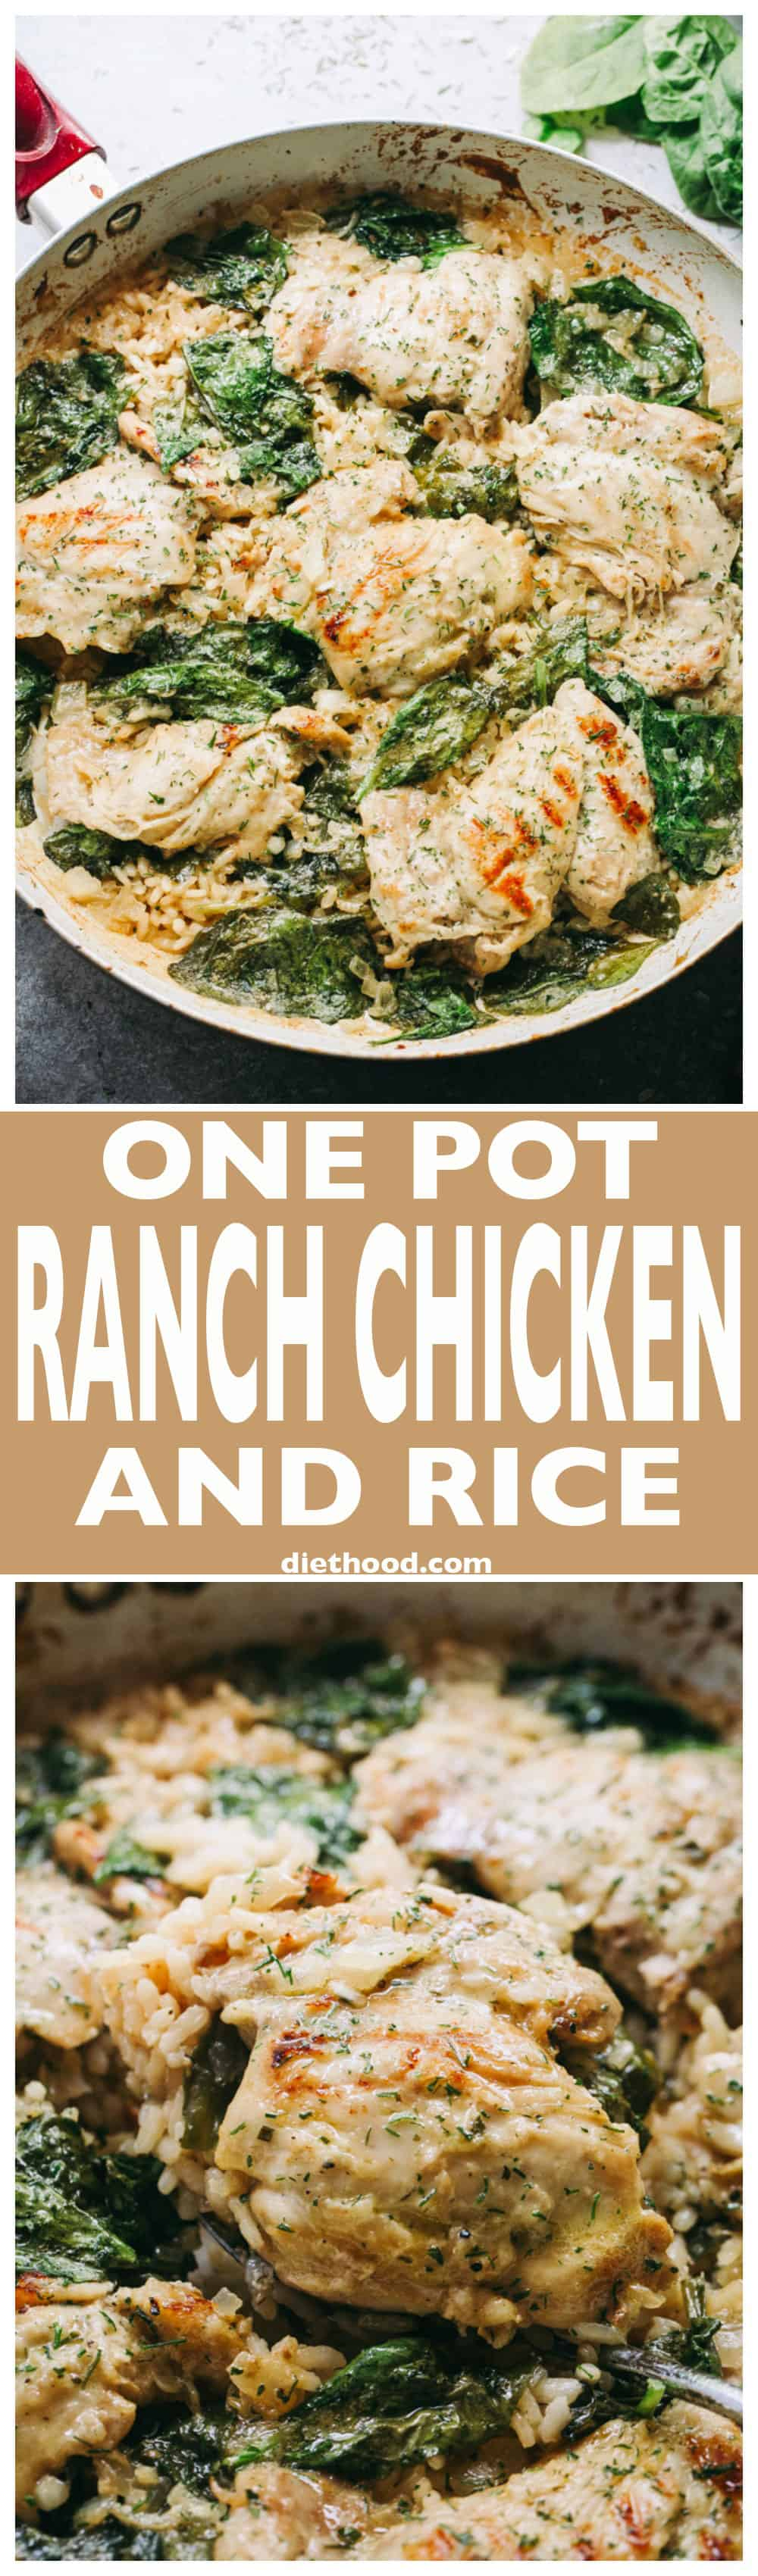 One Pot Ranch Chicken and Rice - Easy, quick, and delicious ranch flavored chicken cooked in one pot with rice and spinach.